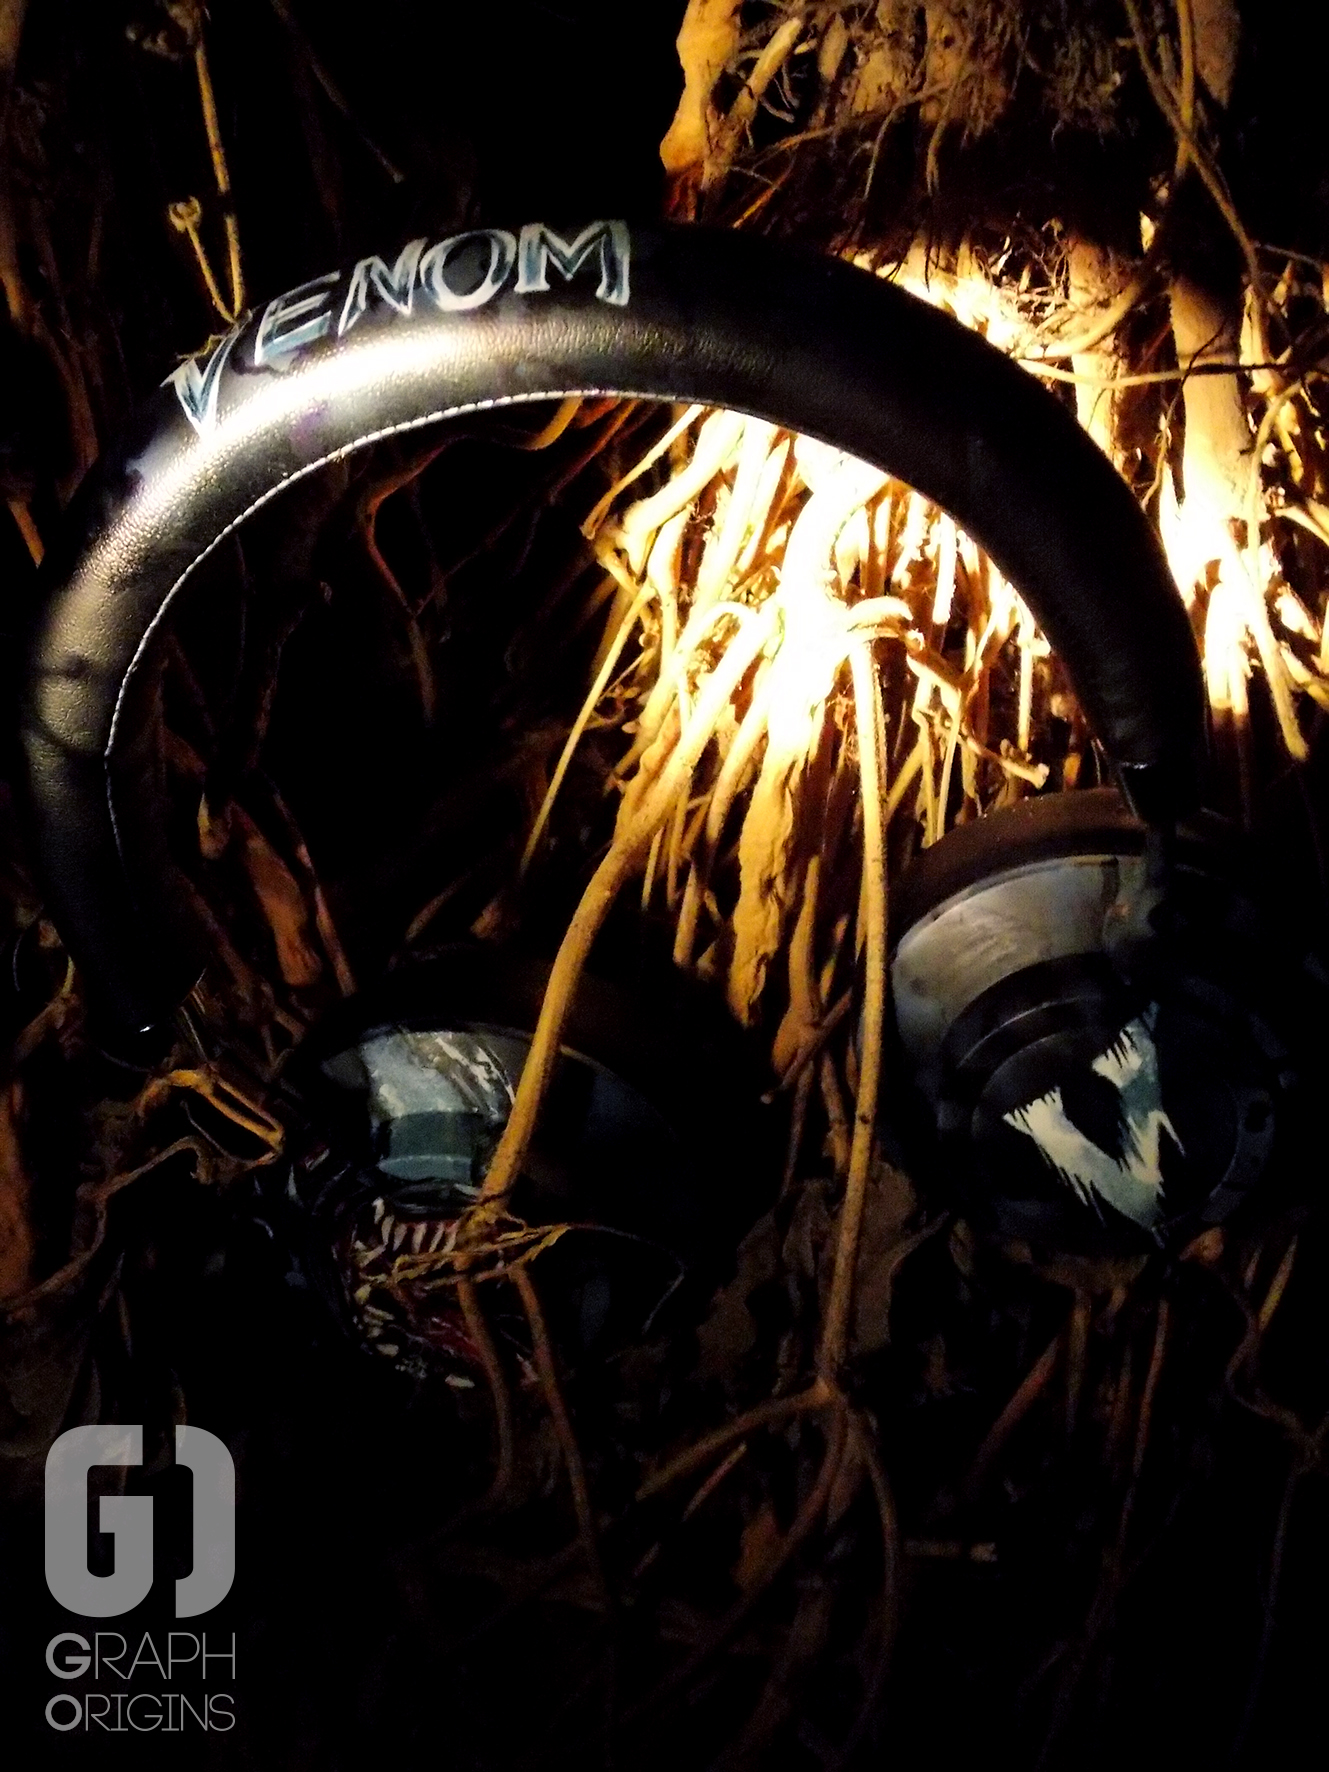 Custom Venom Headphone 2